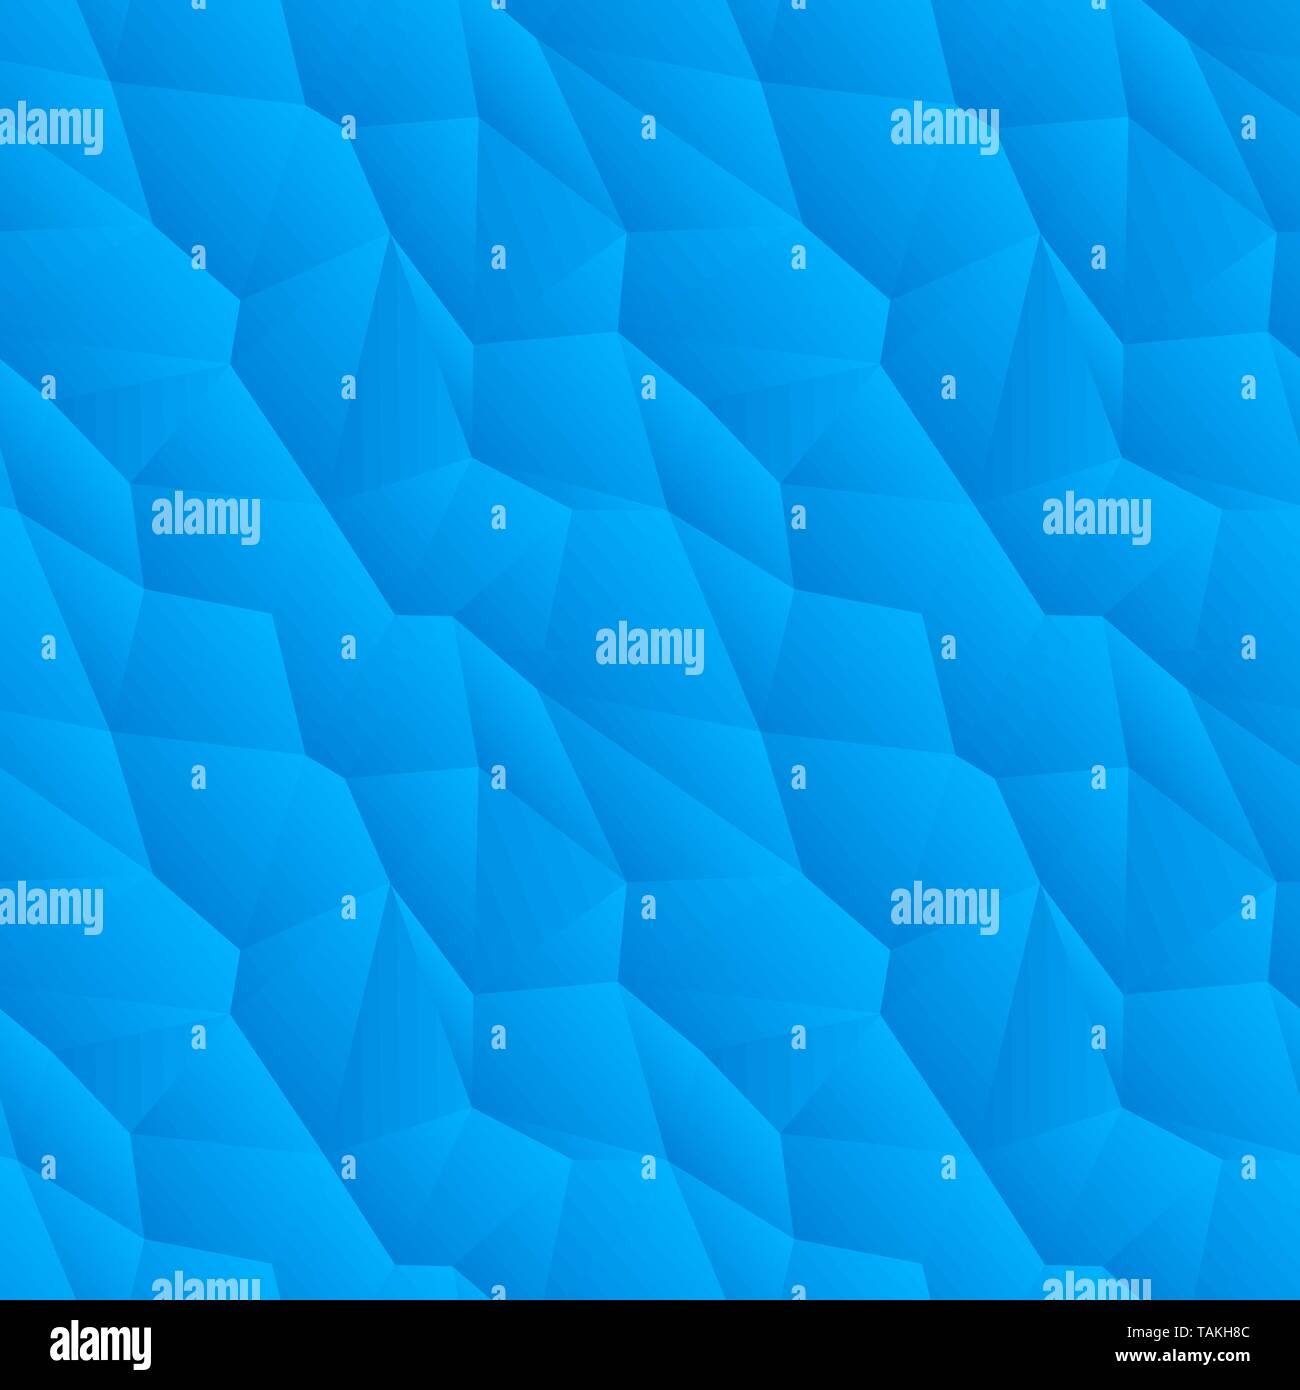 Abstract blue triangulated seamless pattern - Stock Image